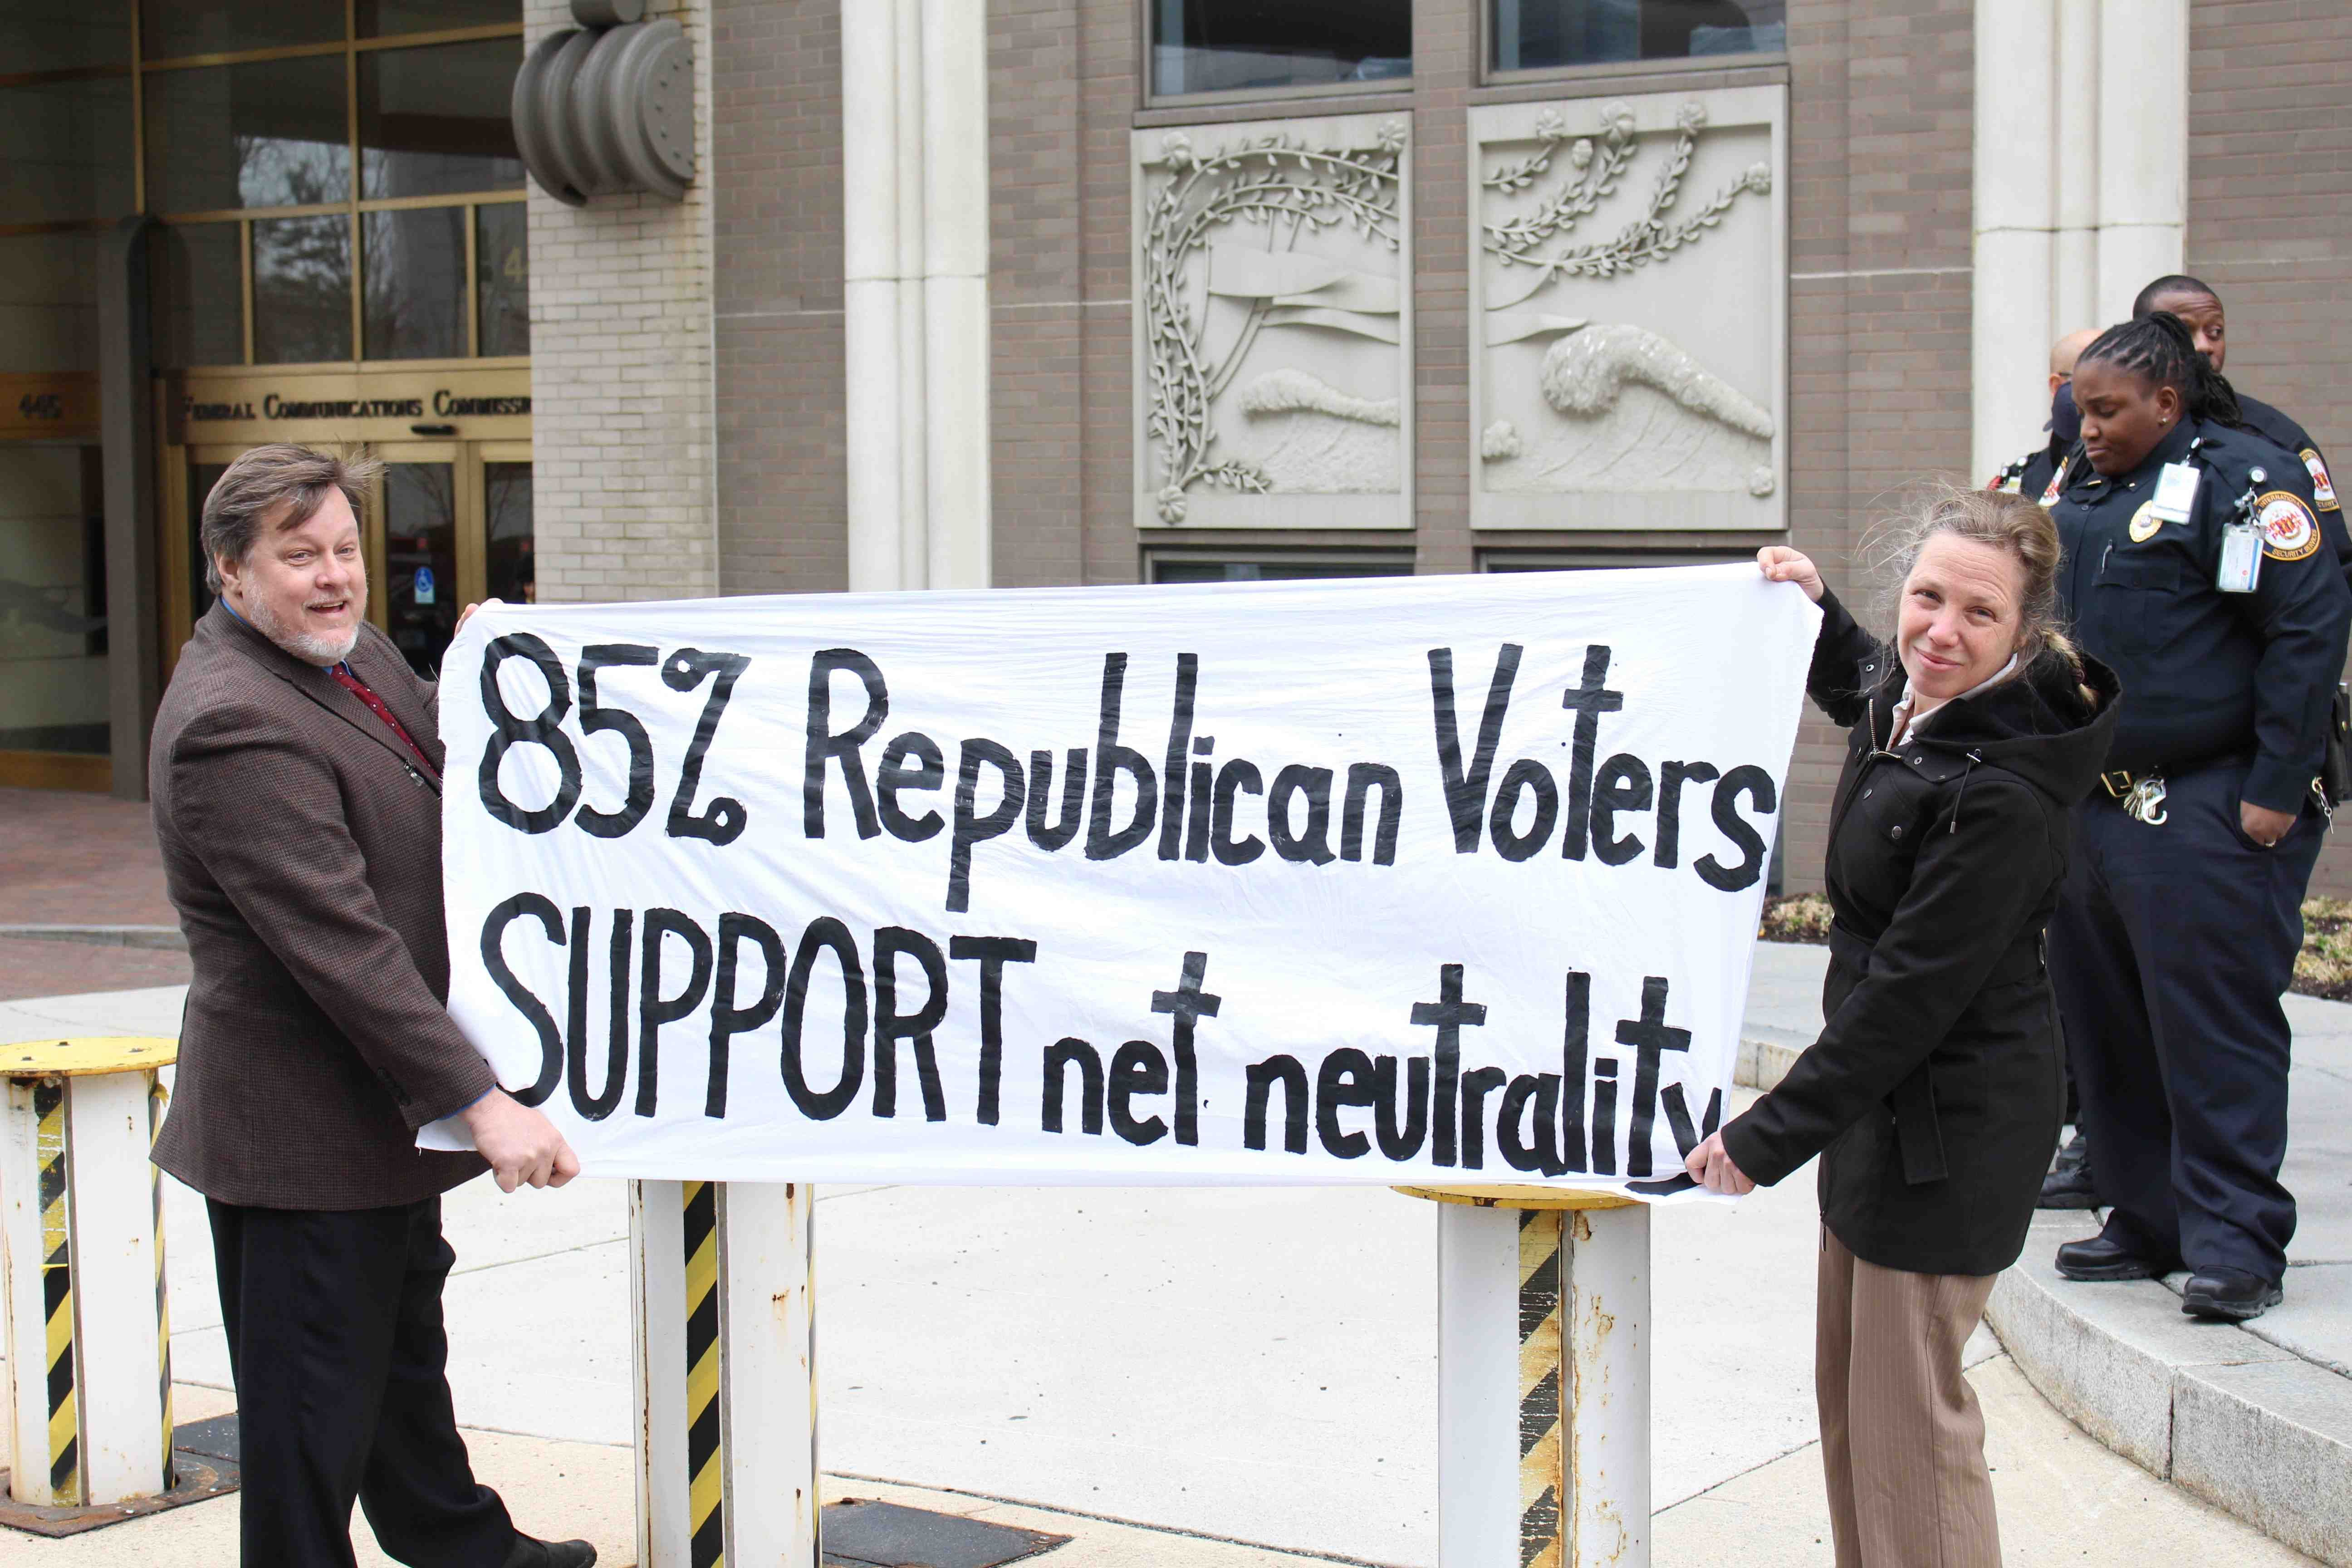 republicans want internet freedom too